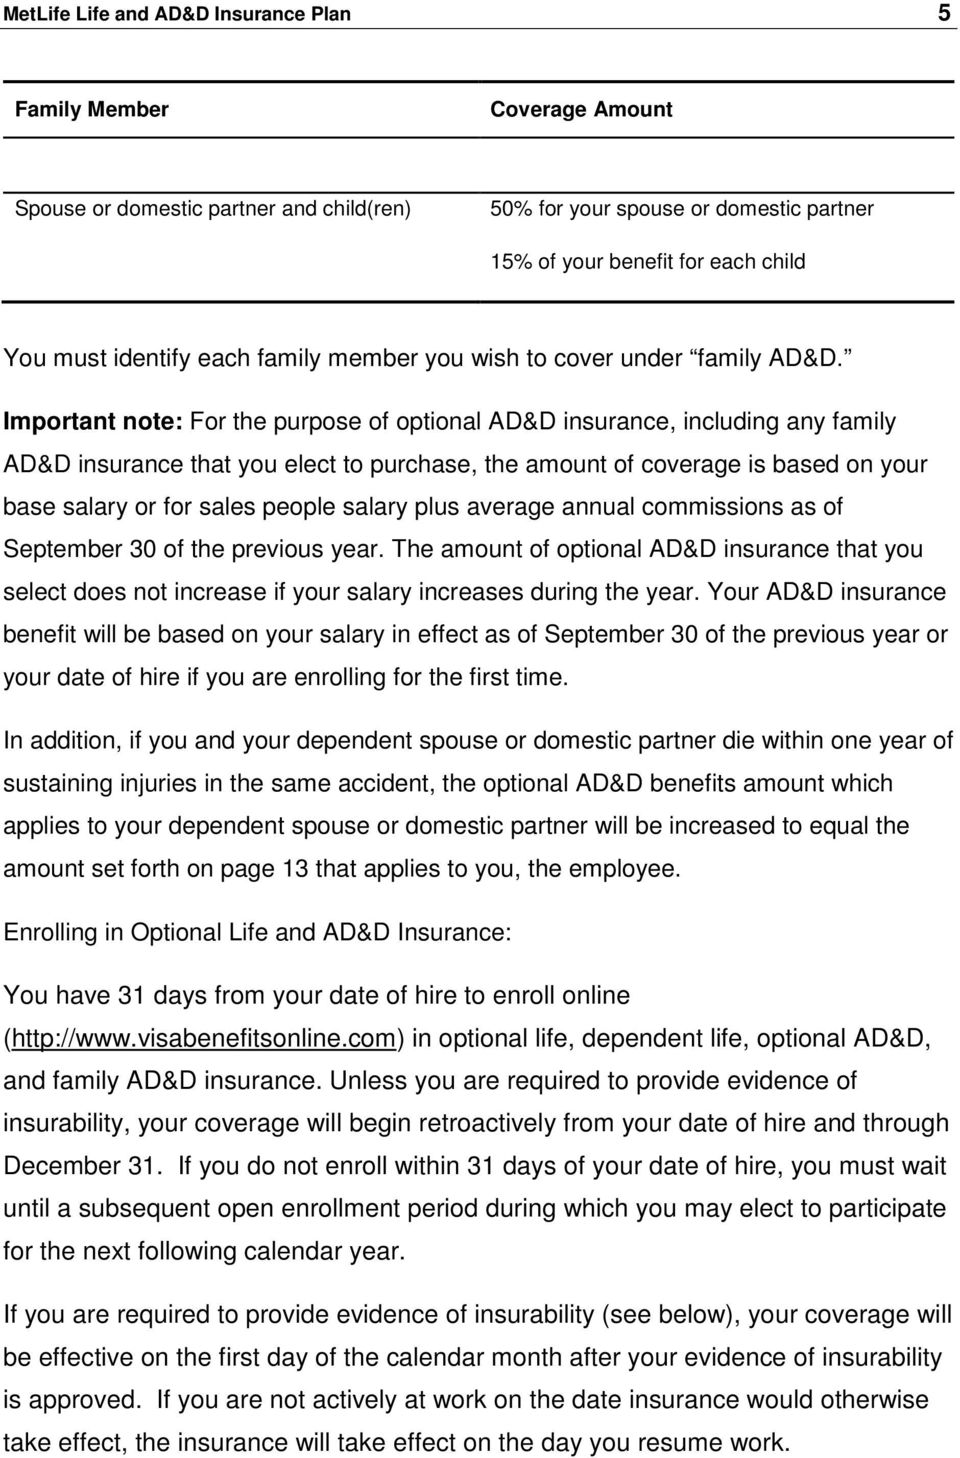 Important note: For the purpose of optional AD&D insurance, including any family AD&D insurance that you elect to purchase, the amount of coverage is based on your base salary or for sales people